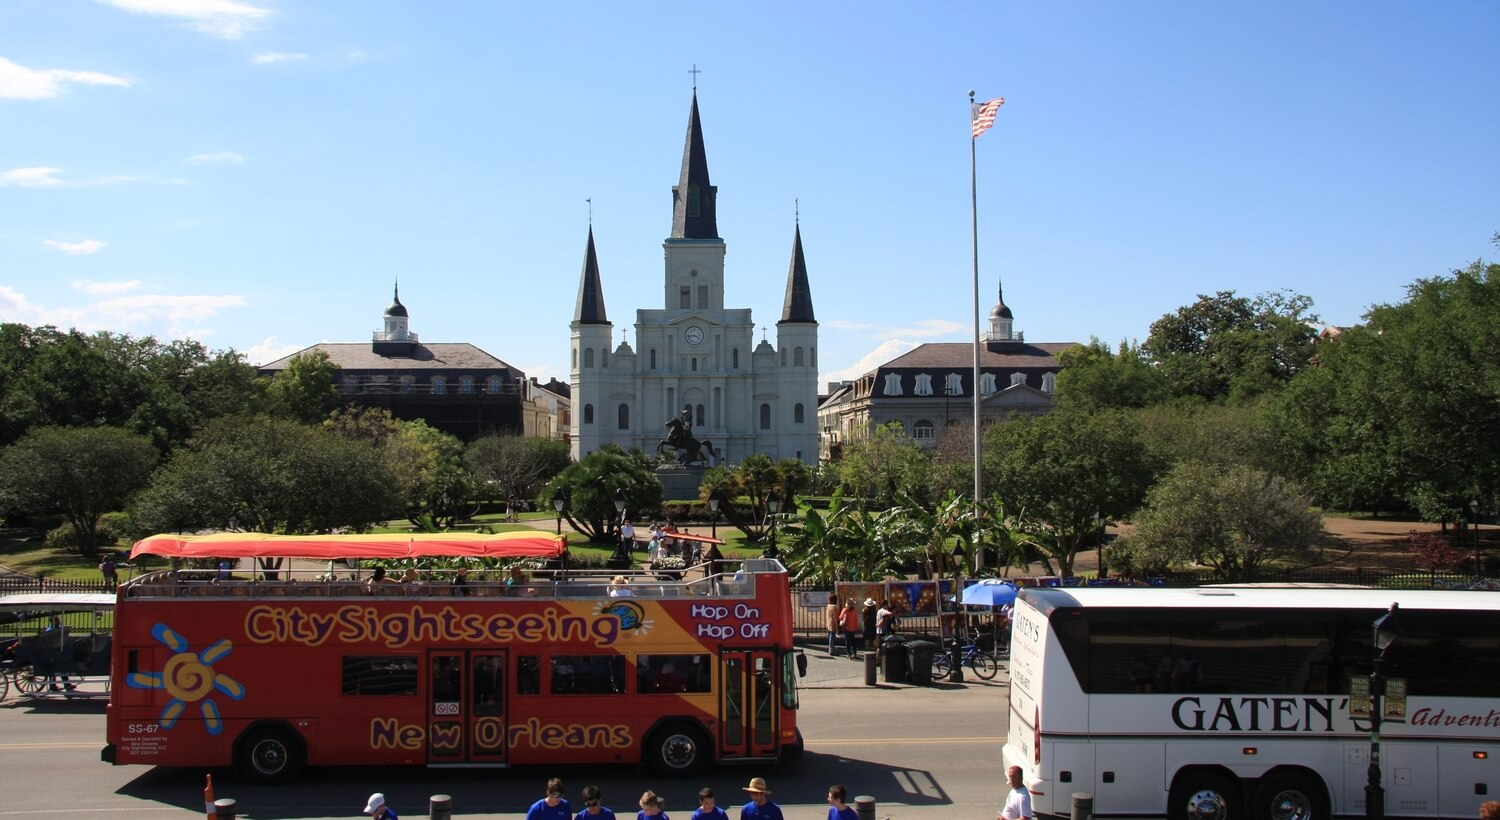 City Sightseeing Tour Bus in New Orleans